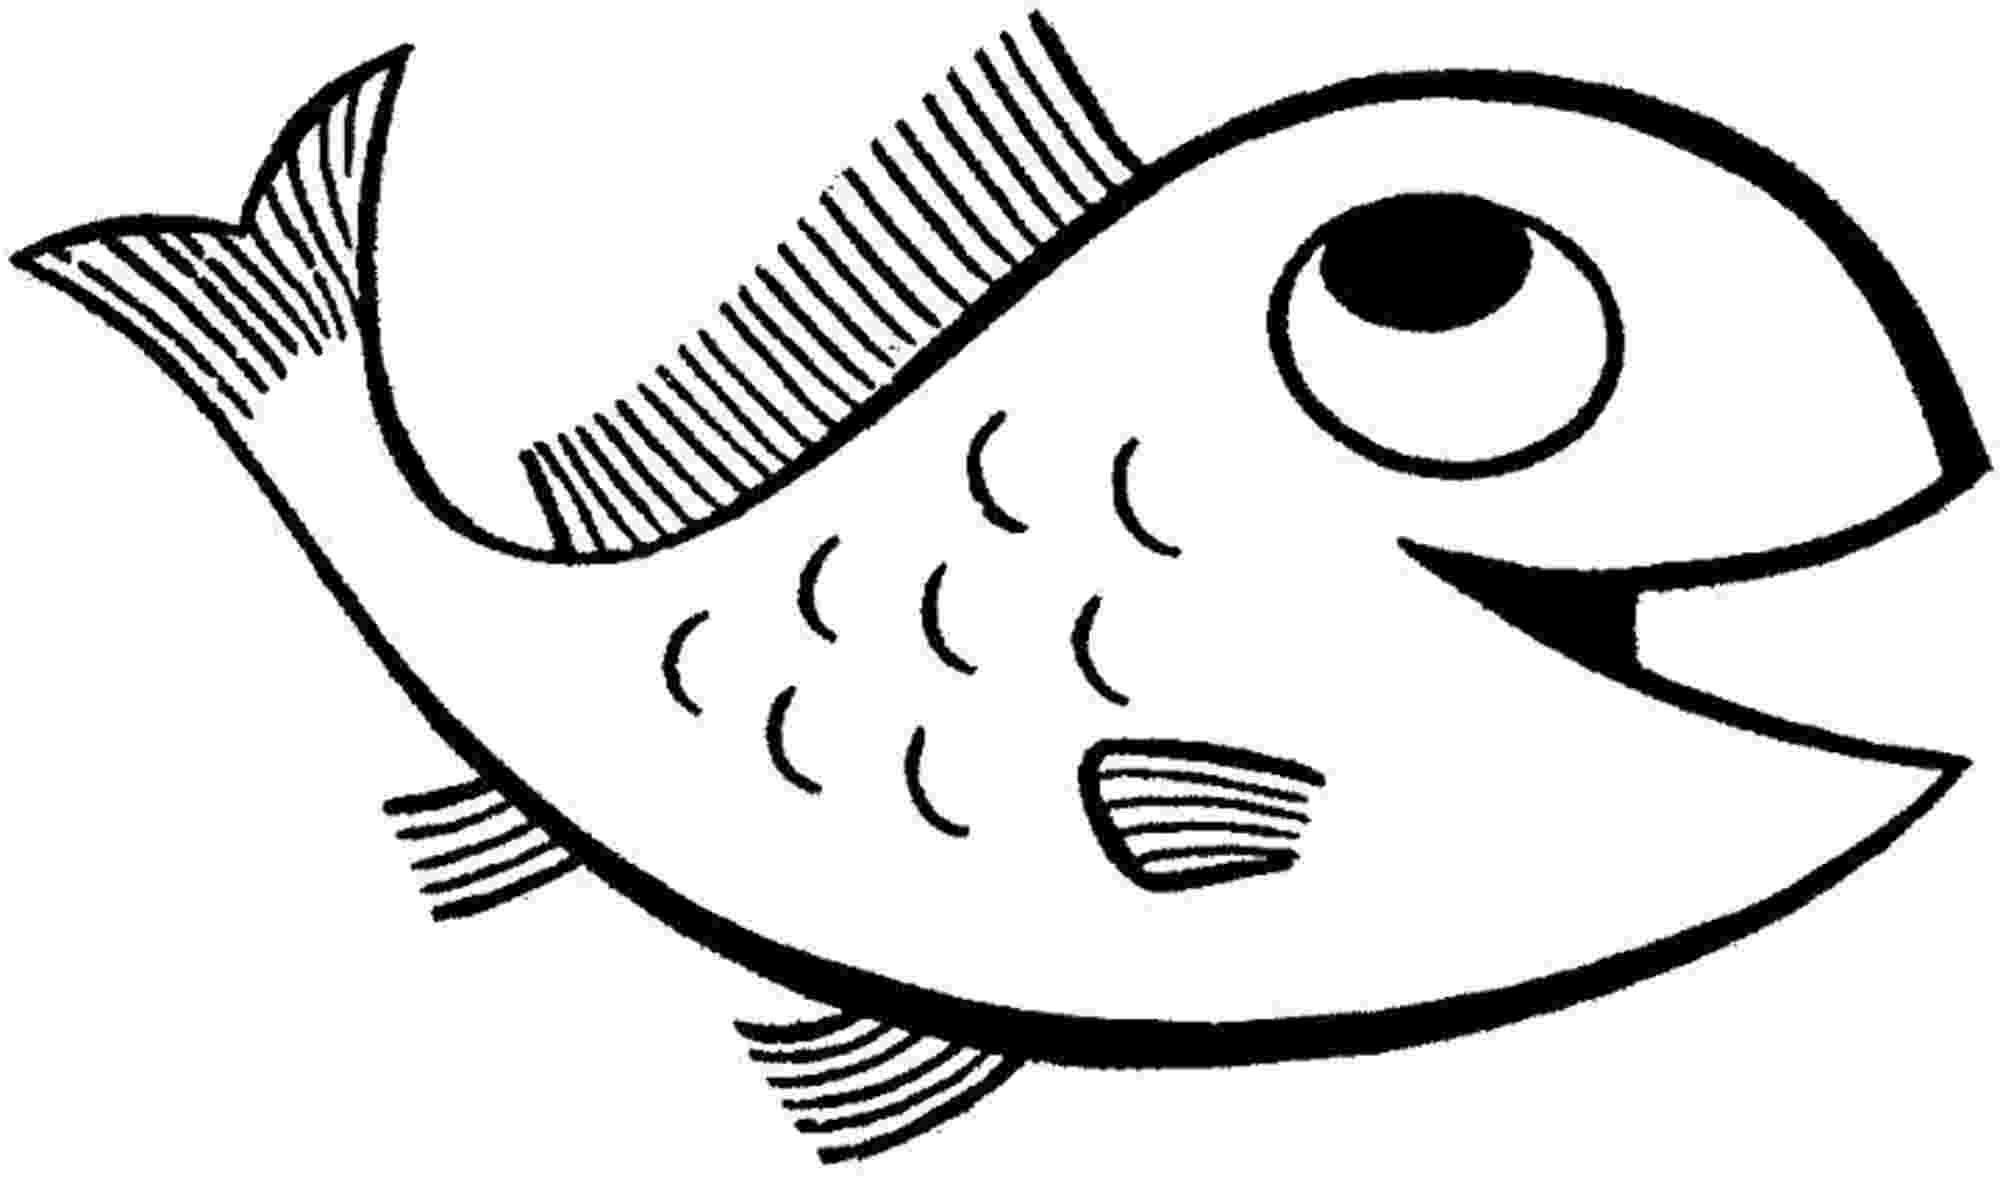 fish colouring images free amazing printable fish coloring pages coloring pages colouring fish images